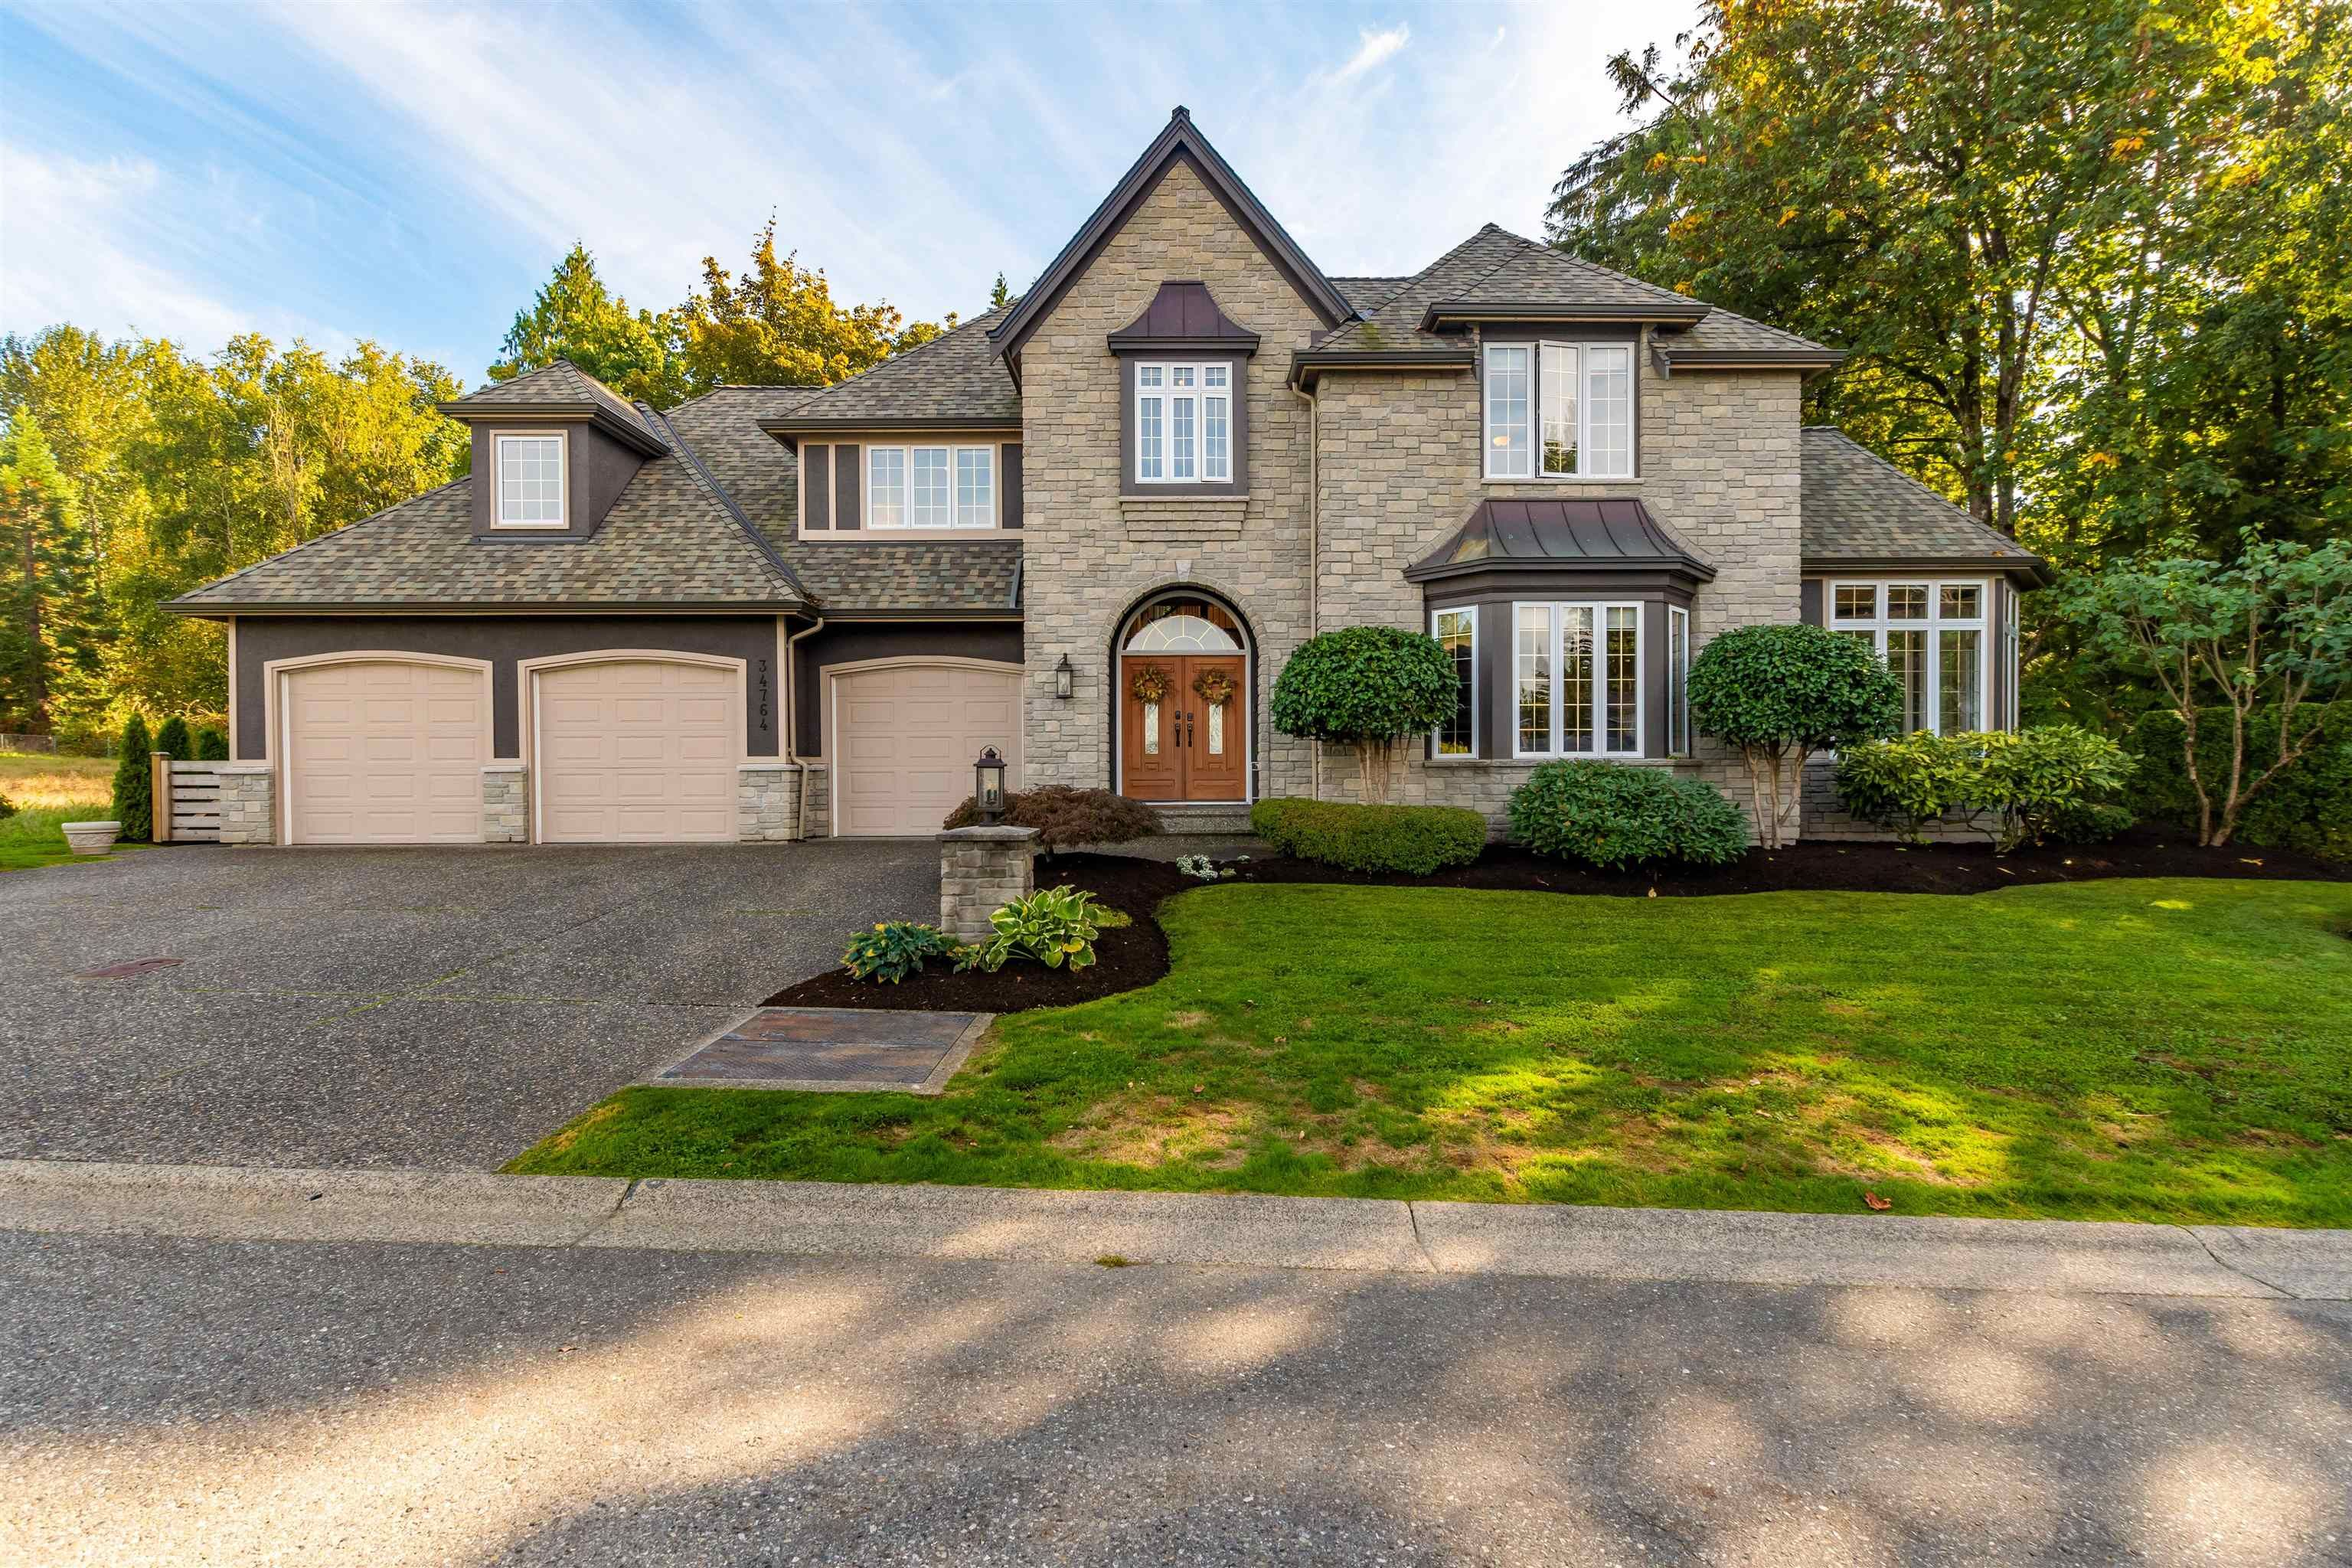 """Main Photo: 34764 PRIOR Avenue in Abbotsford: Abbotsford East House for sale in """"Creekstone on the Park"""" : MLS®# R2620524"""